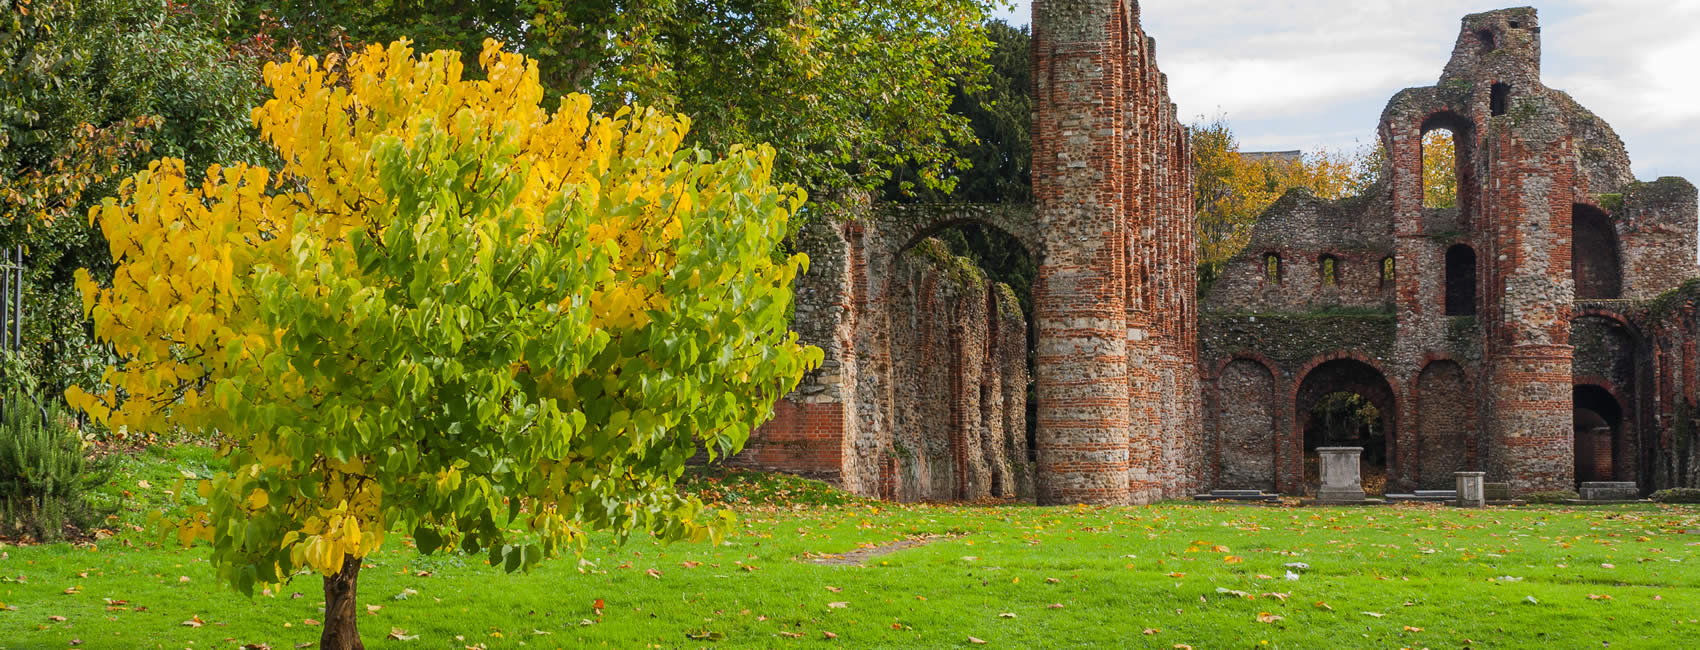 St. Botolph's Priory in Colchester Essex